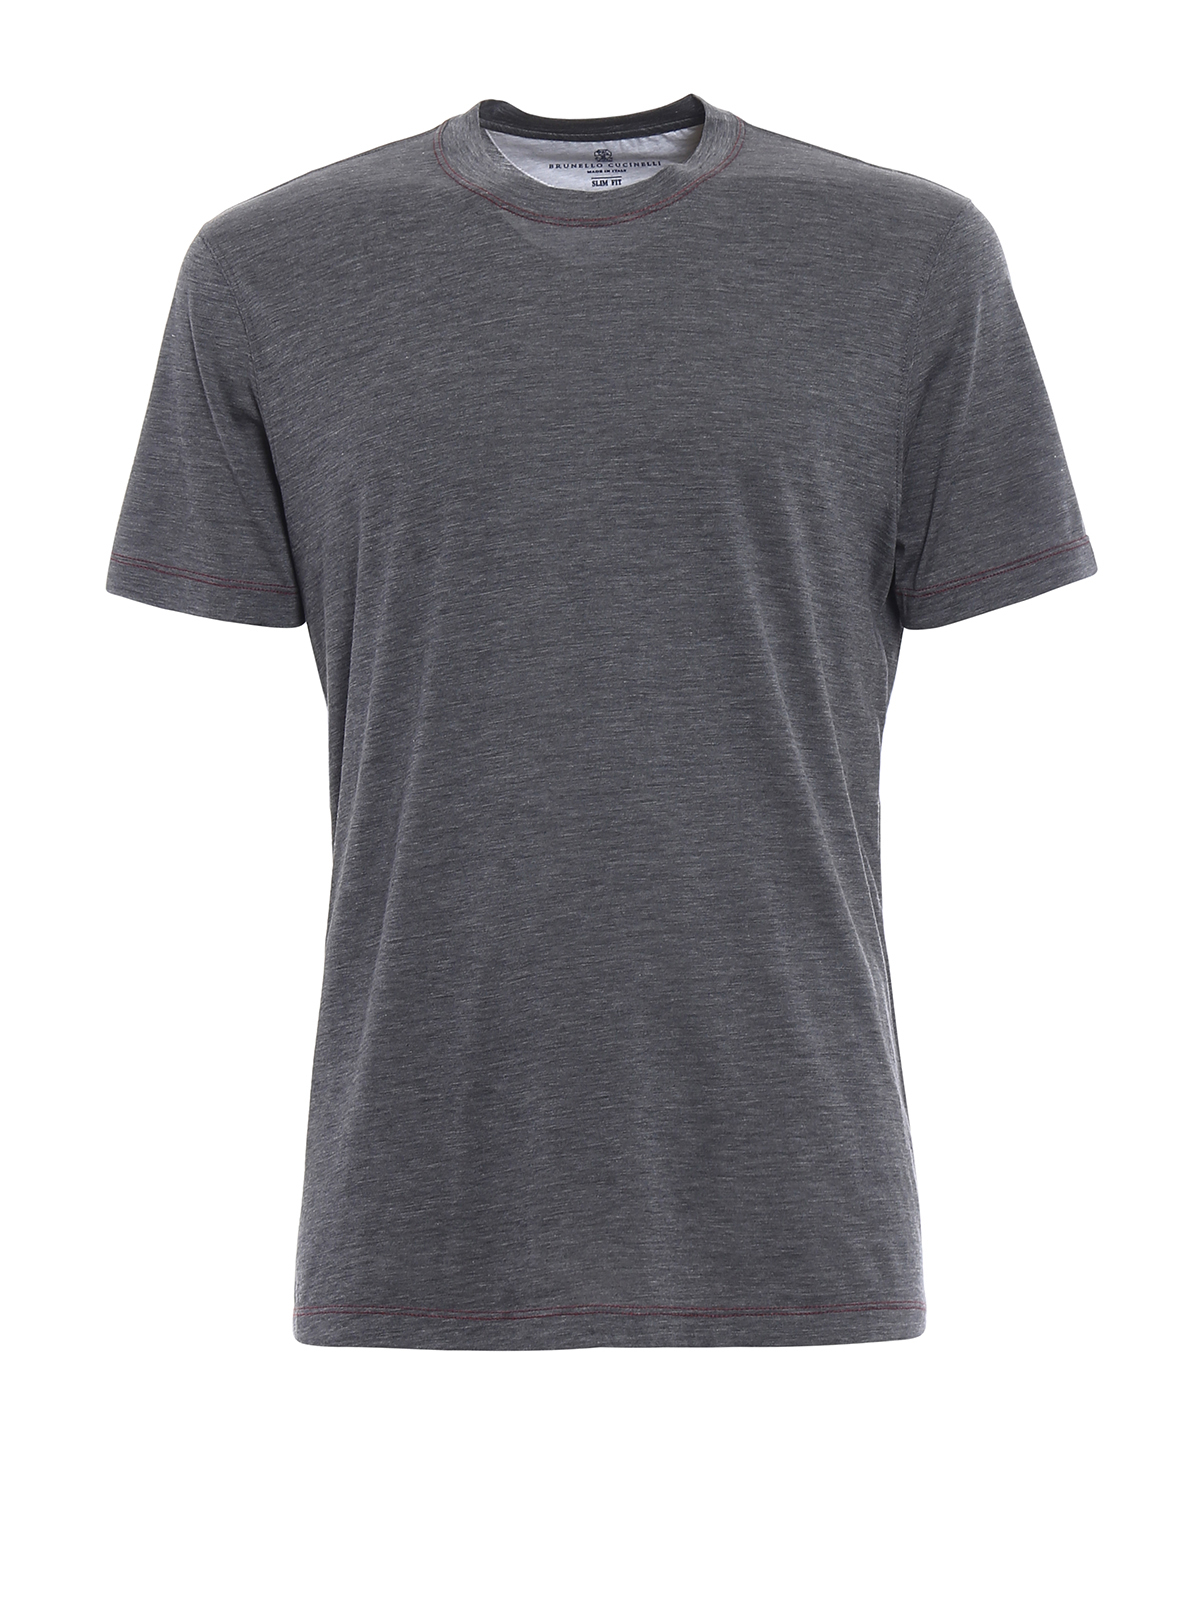 Silk and cotton melange t shirt by brunello cucinelli t for Cotton silk tee shirts